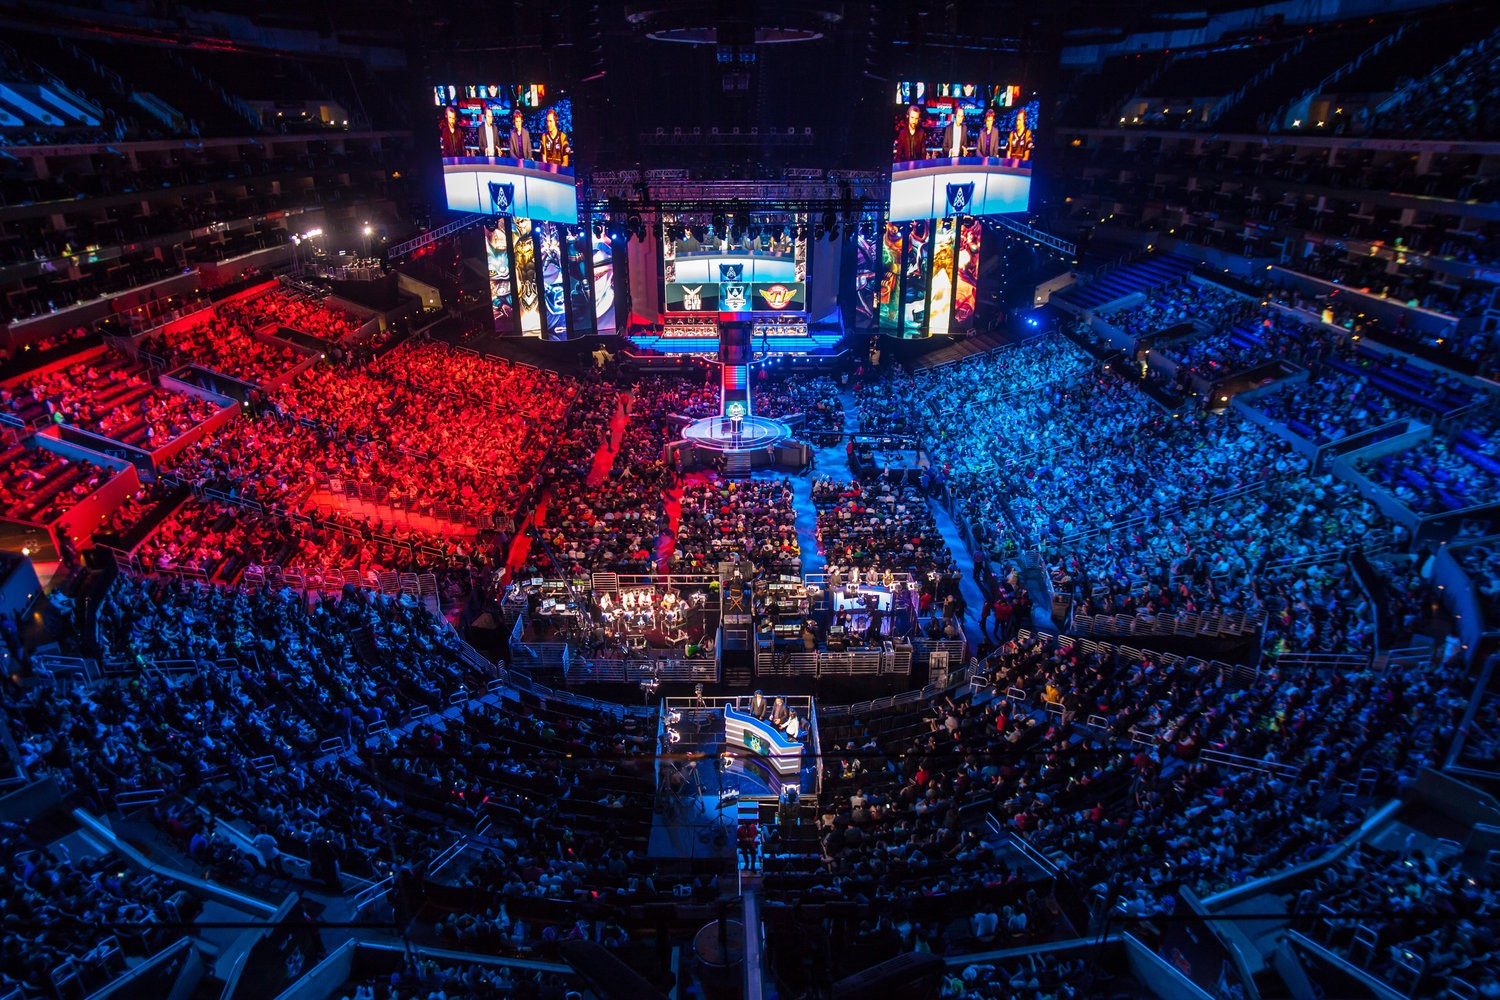 League-of-Legends-Worlds-Venue